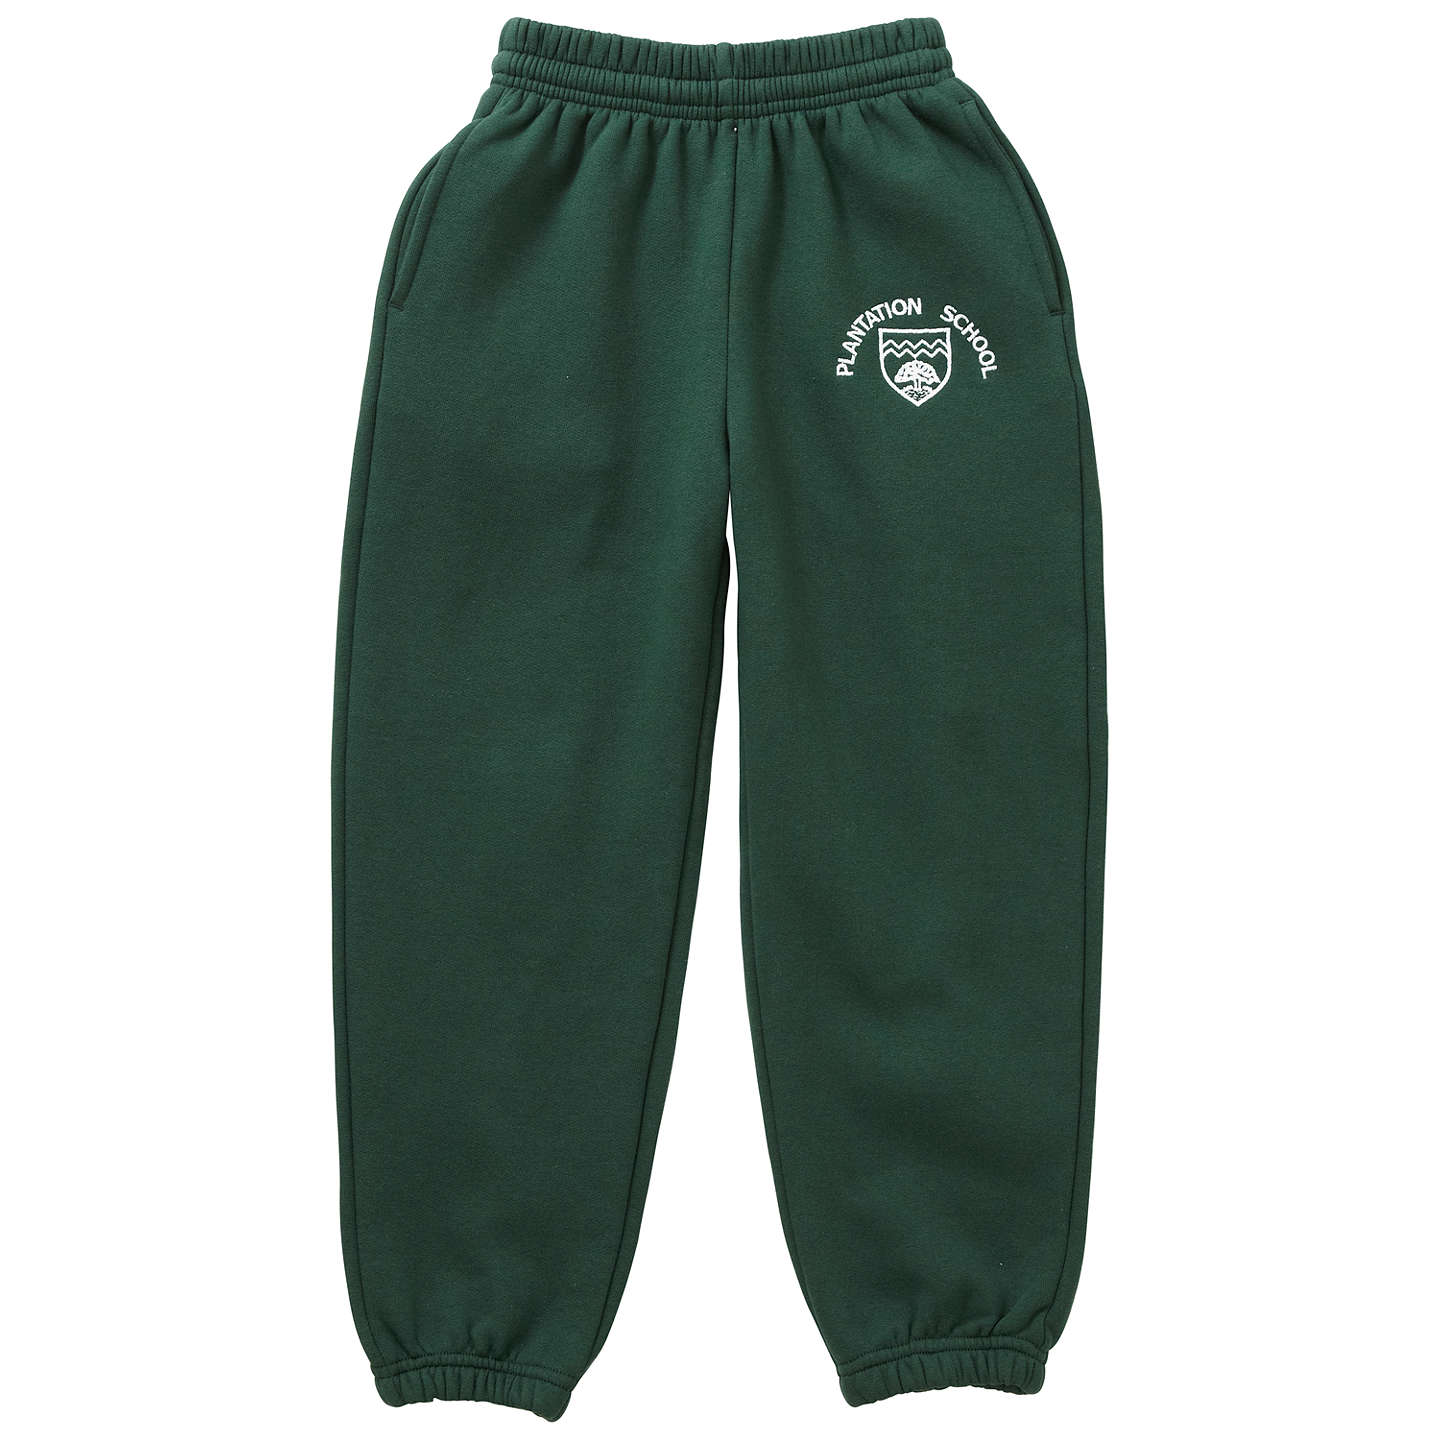 BuyPlantation County Primary School Unisex Jogging Bottoms, Green, Age 3/4 Online at johnlewis.com